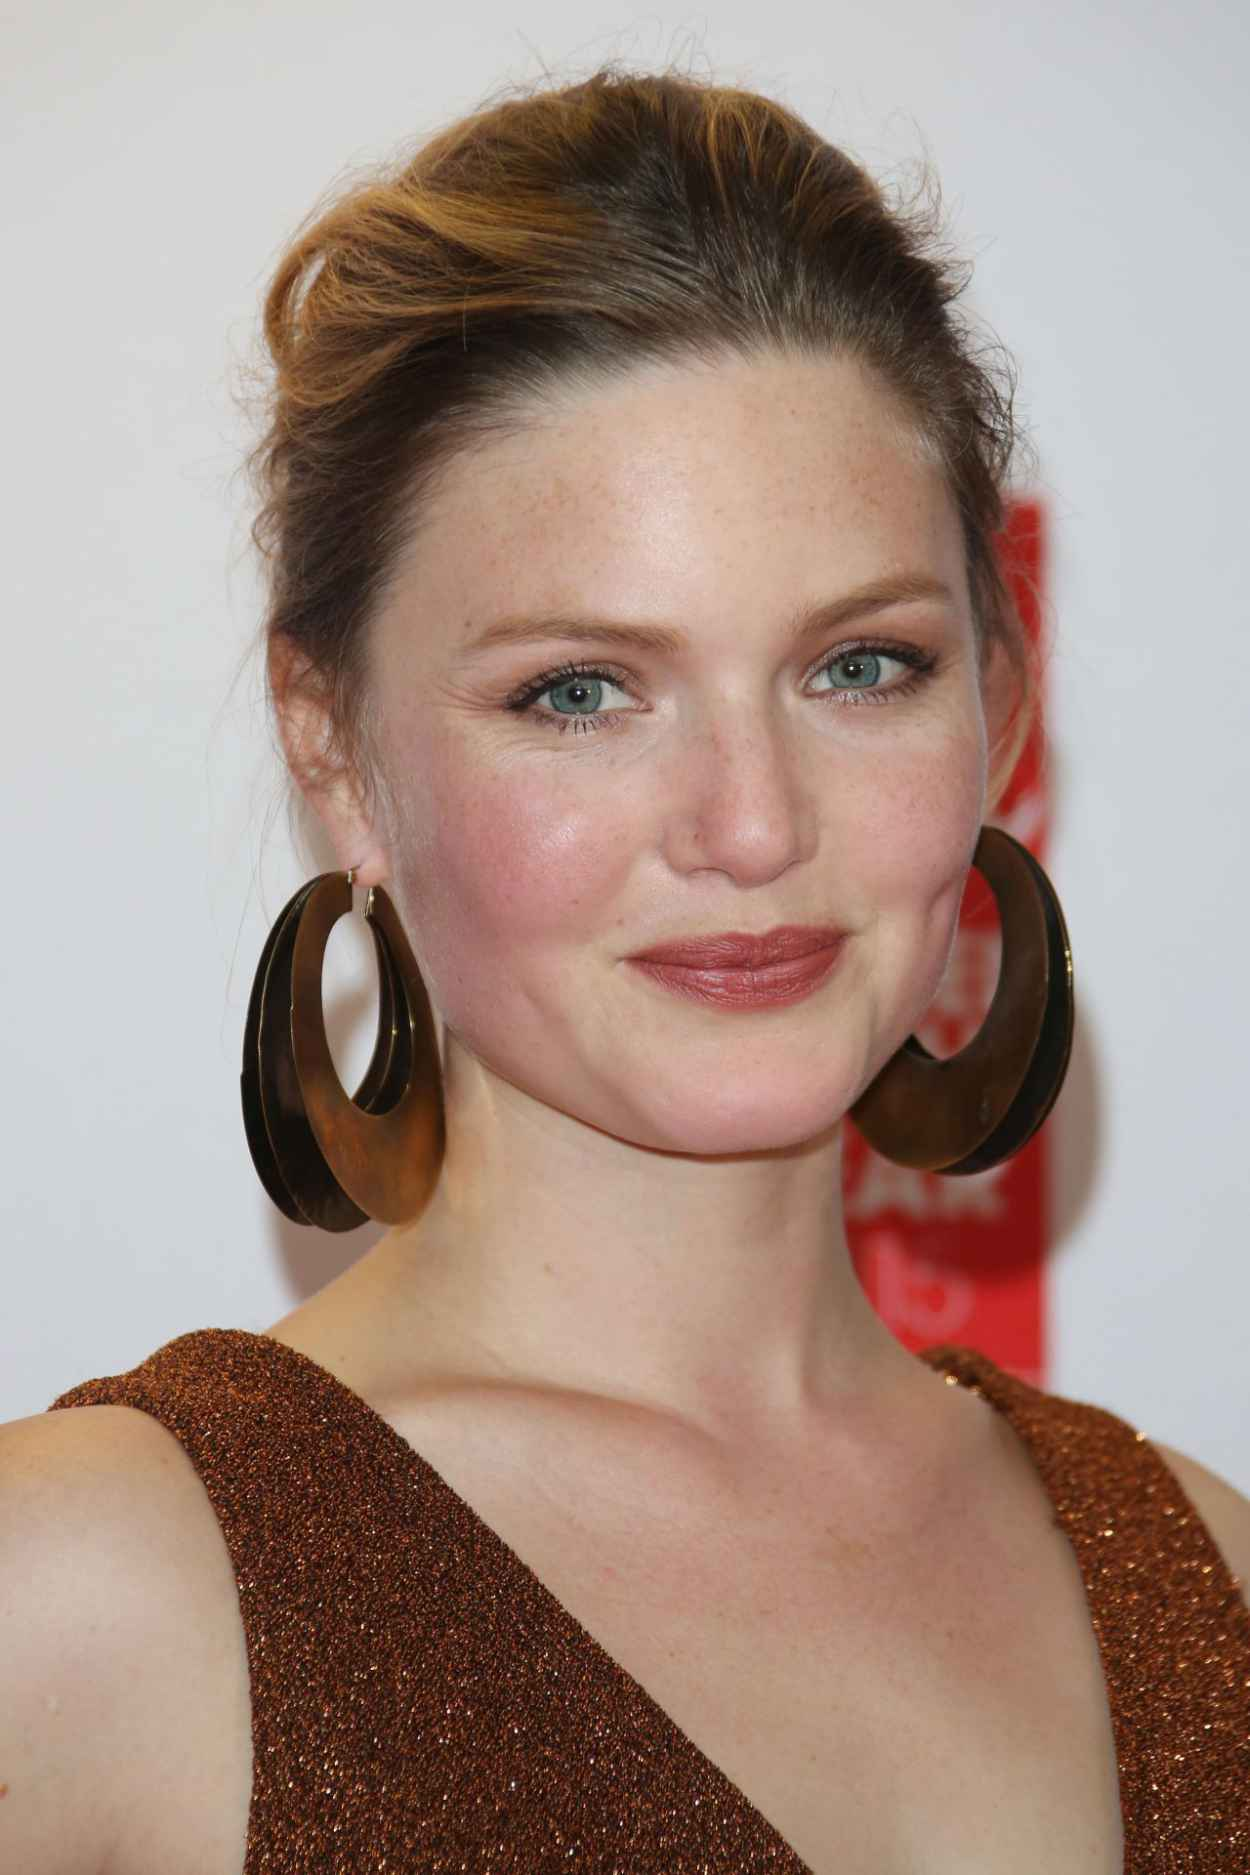 holliday grainger filmsholliday grainger gif, holliday grainger vk, holliday grainger photoshoot, holliday grainger tumblr gif, holliday grainger harry treadaway, holliday grainger merlin, holliday grainger listal, holliday grainger jane eyre, holliday grainger movie, holliday grainger fan, holliday grainger quotes, holliday grainger home, holliday grainger boyfriend, holliday grainger films, holliday grainger bafta 2017 dress, holliday grainger instagram, holliday grainger lucrezia borgia, holliday grainger interview, holliday grainger gif hunt tumblr, holliday grainger weight height